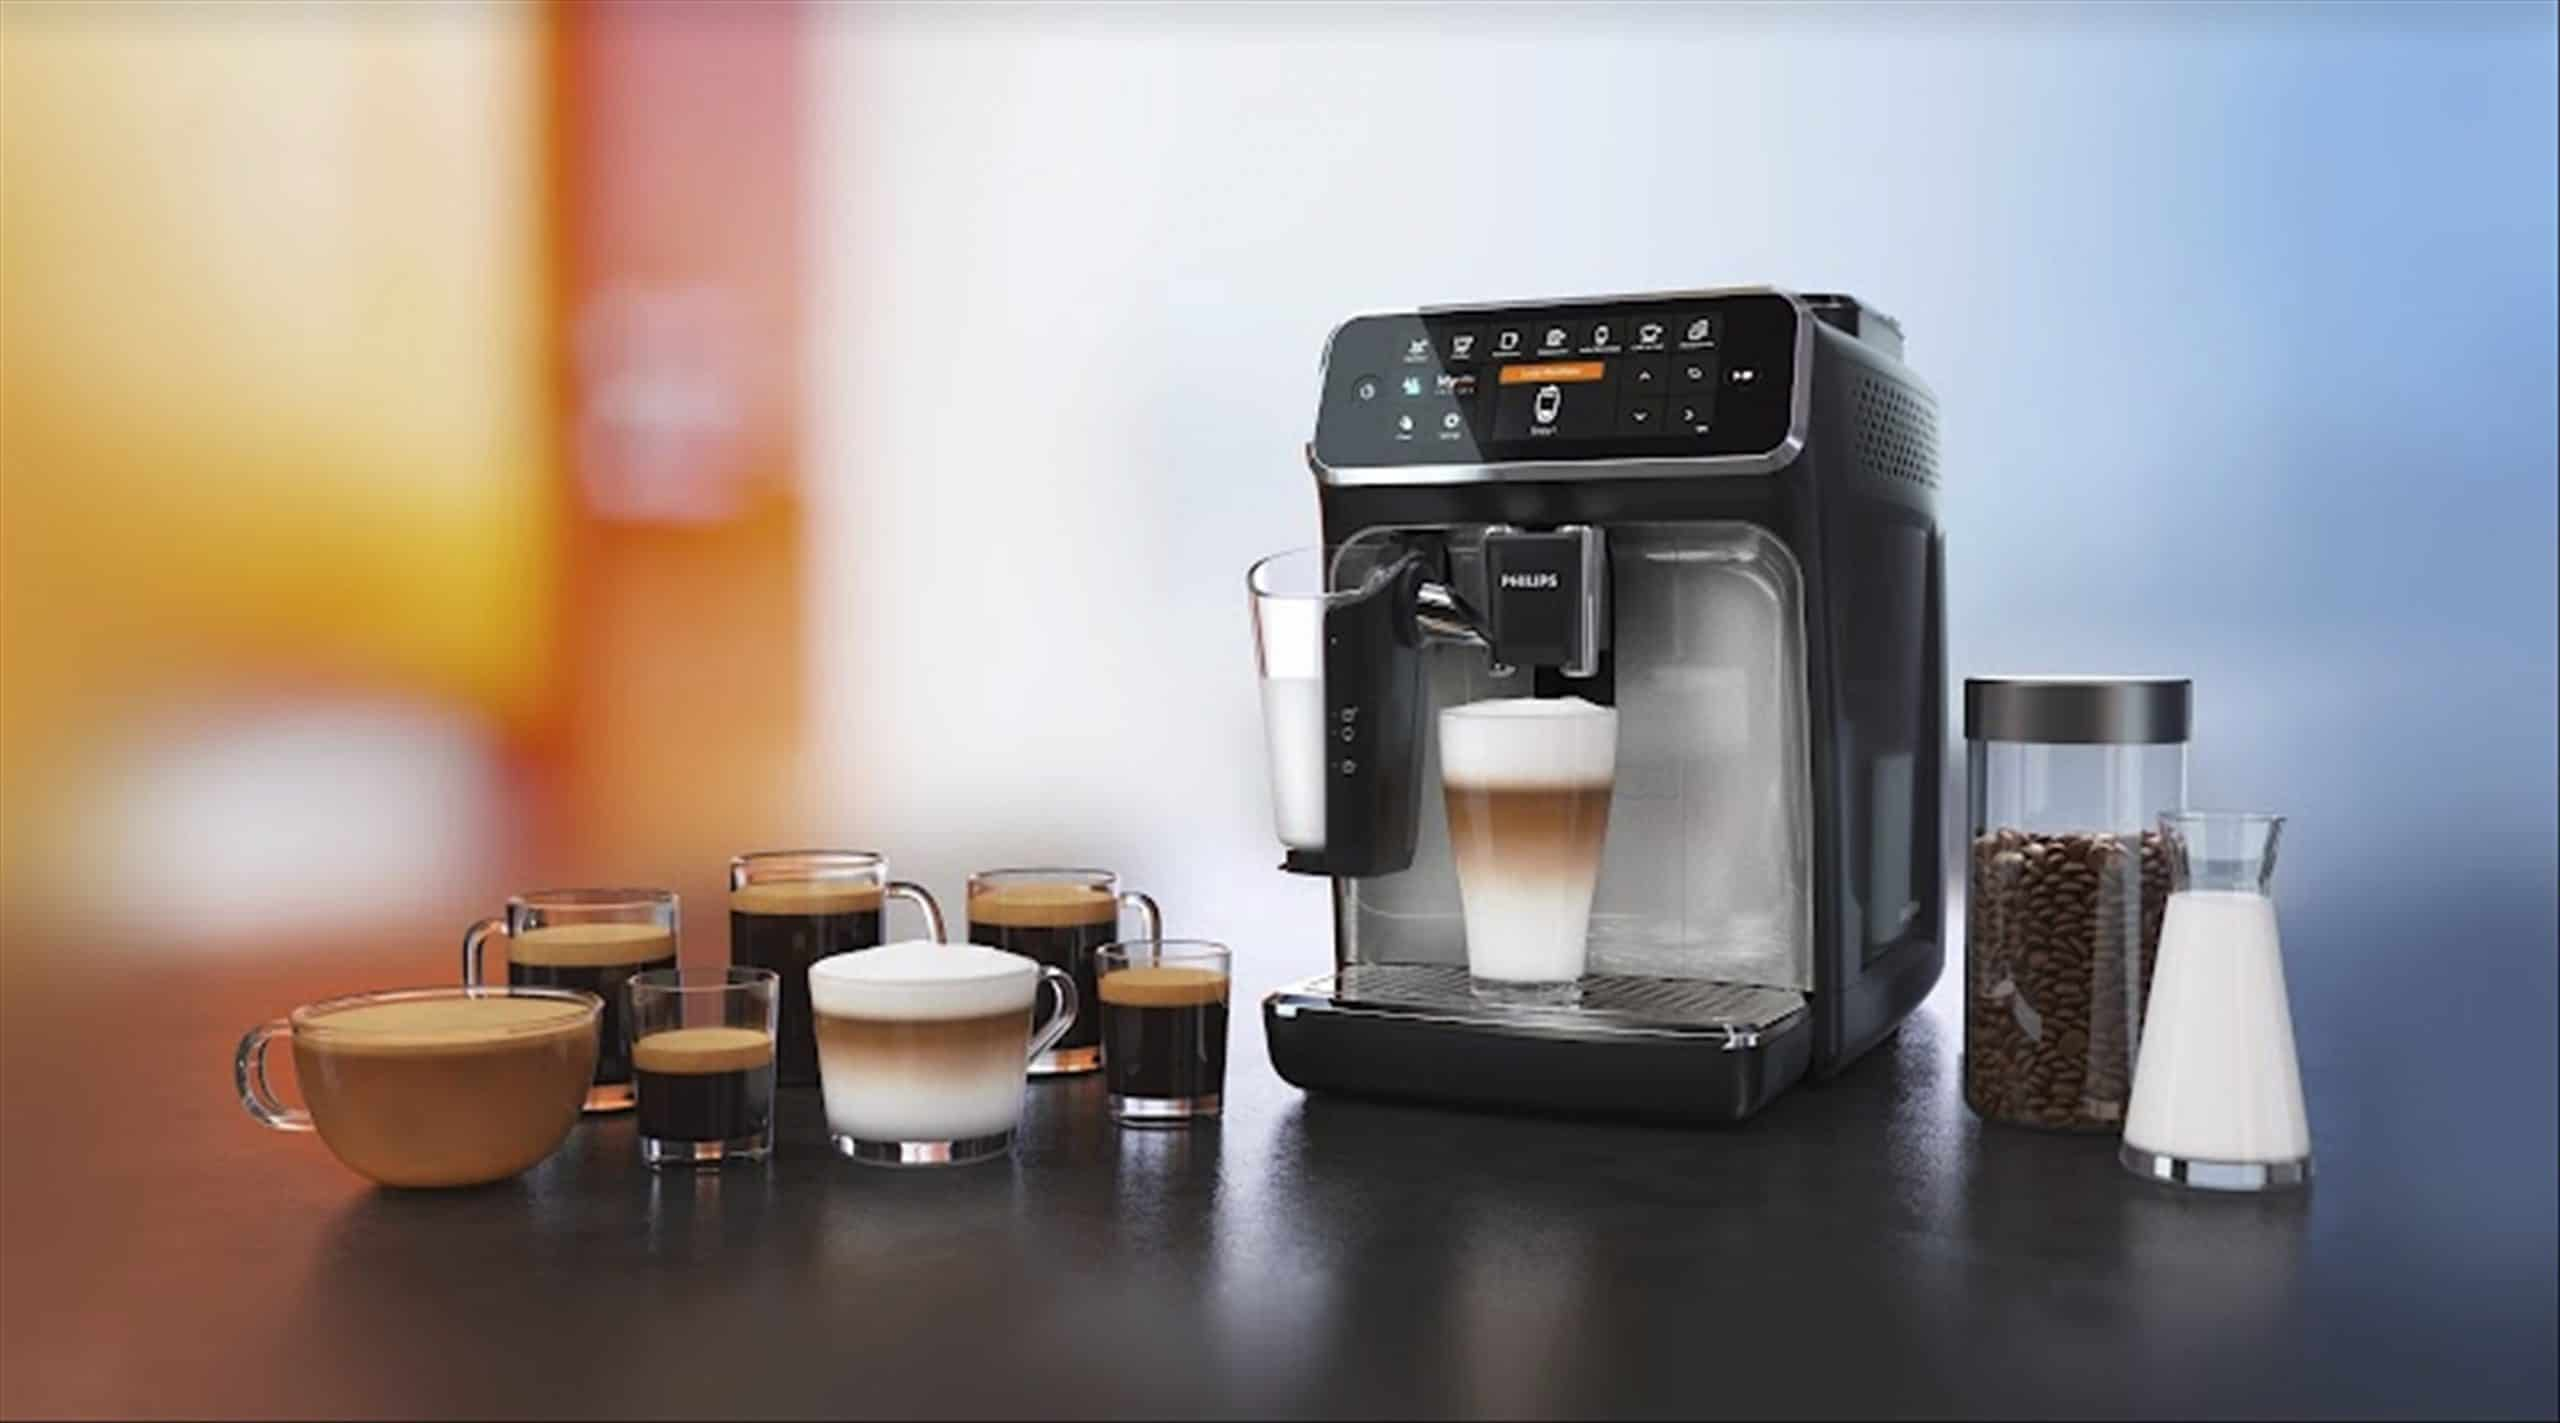 Like a Nespresso machine, but with fresh coffee beans to get that fresh and aromatic coffee you want